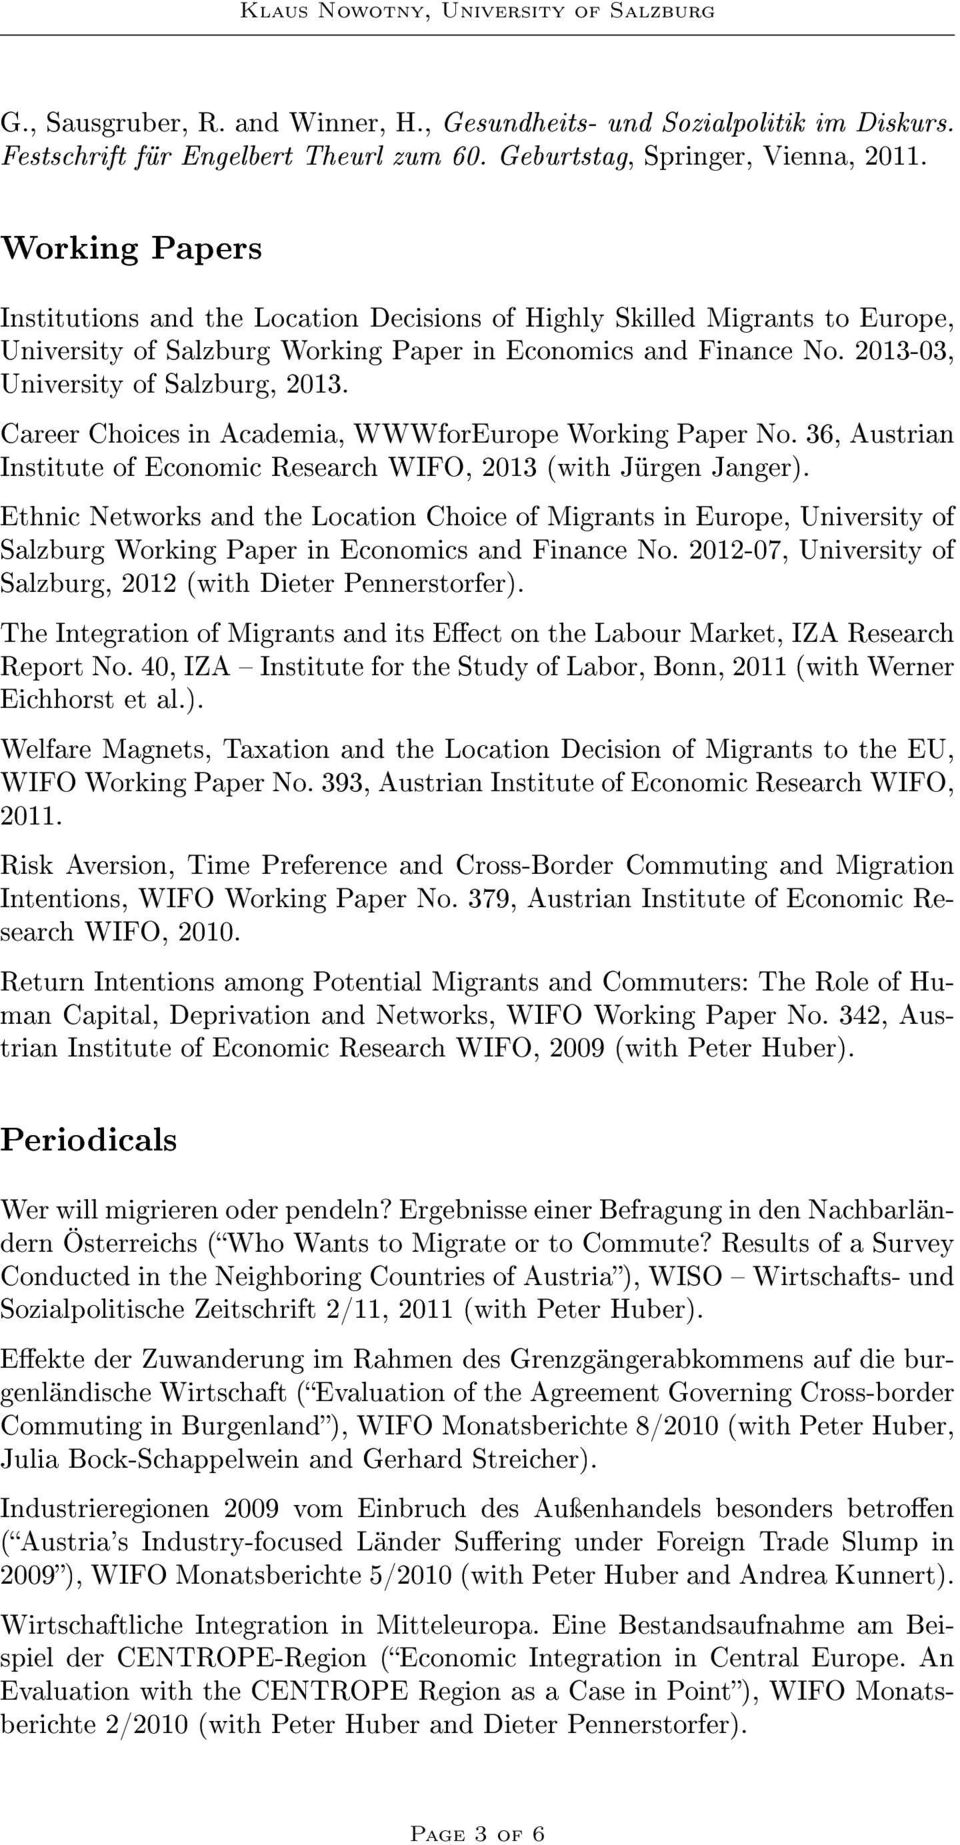 Career Choices in Academia, WWWforEurope Working Paper No. 36, Austrian Institute of Economic Research WIFO, 2013 (with Jürgen Janger).